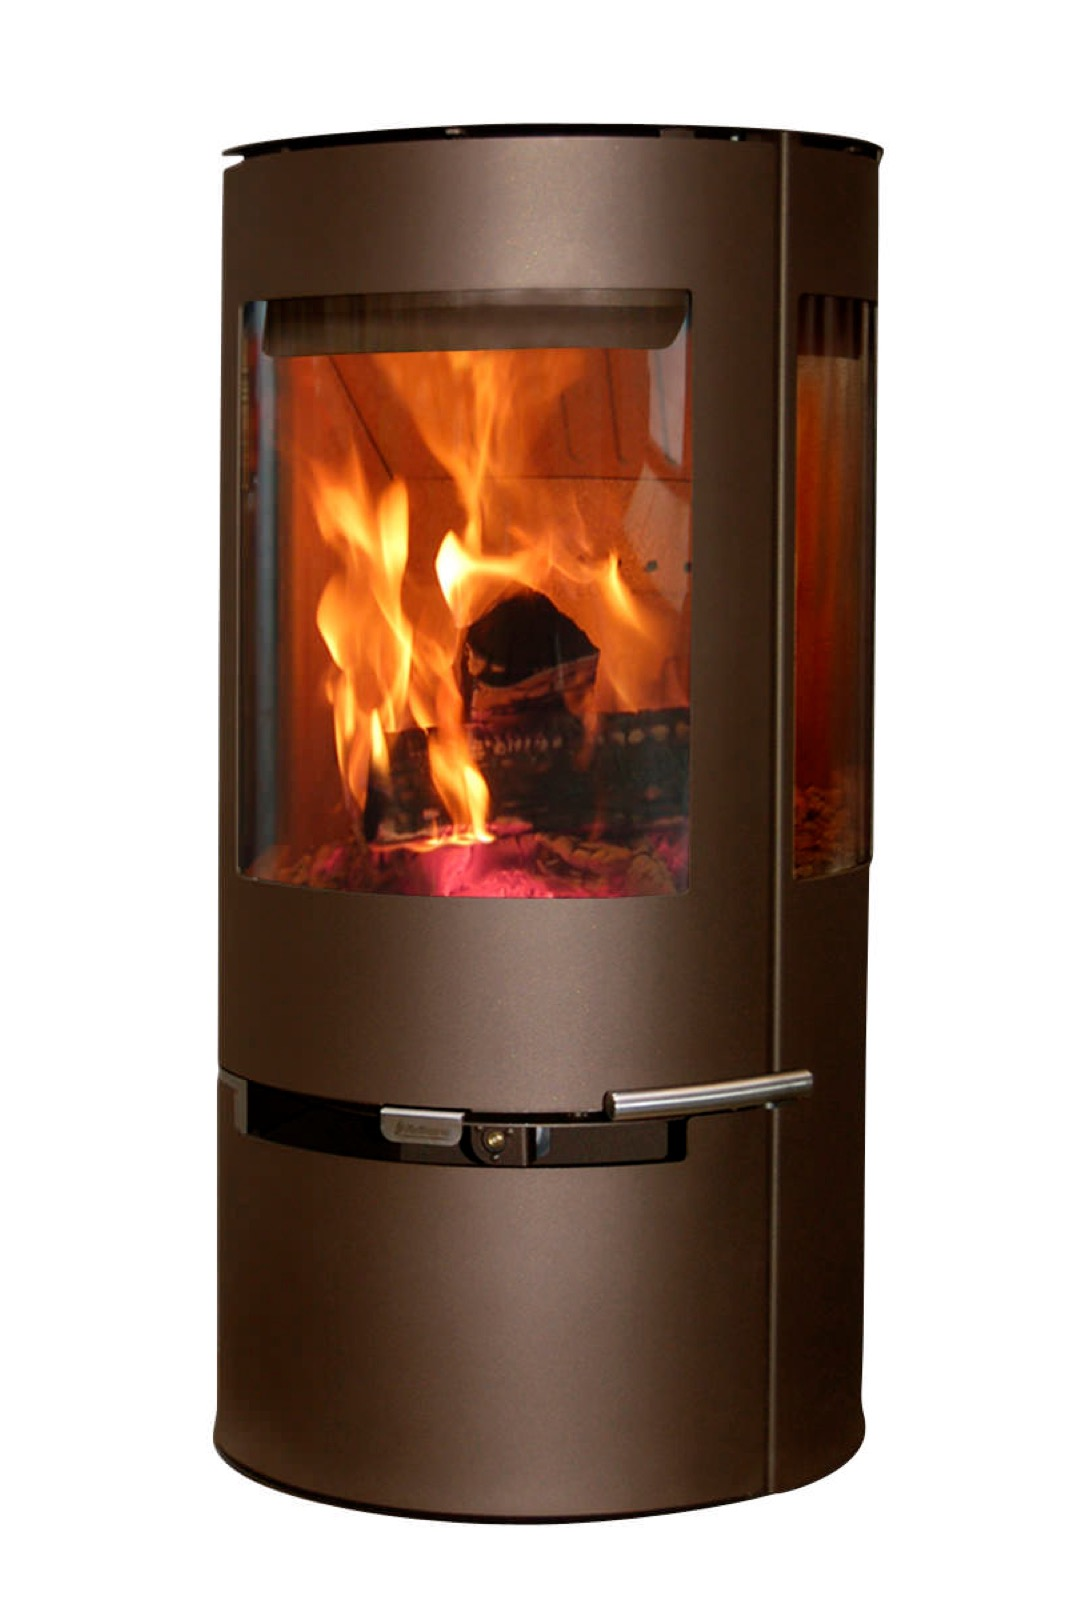 Aduro 9 Defra Approved Wood Burning Stove In Metallic